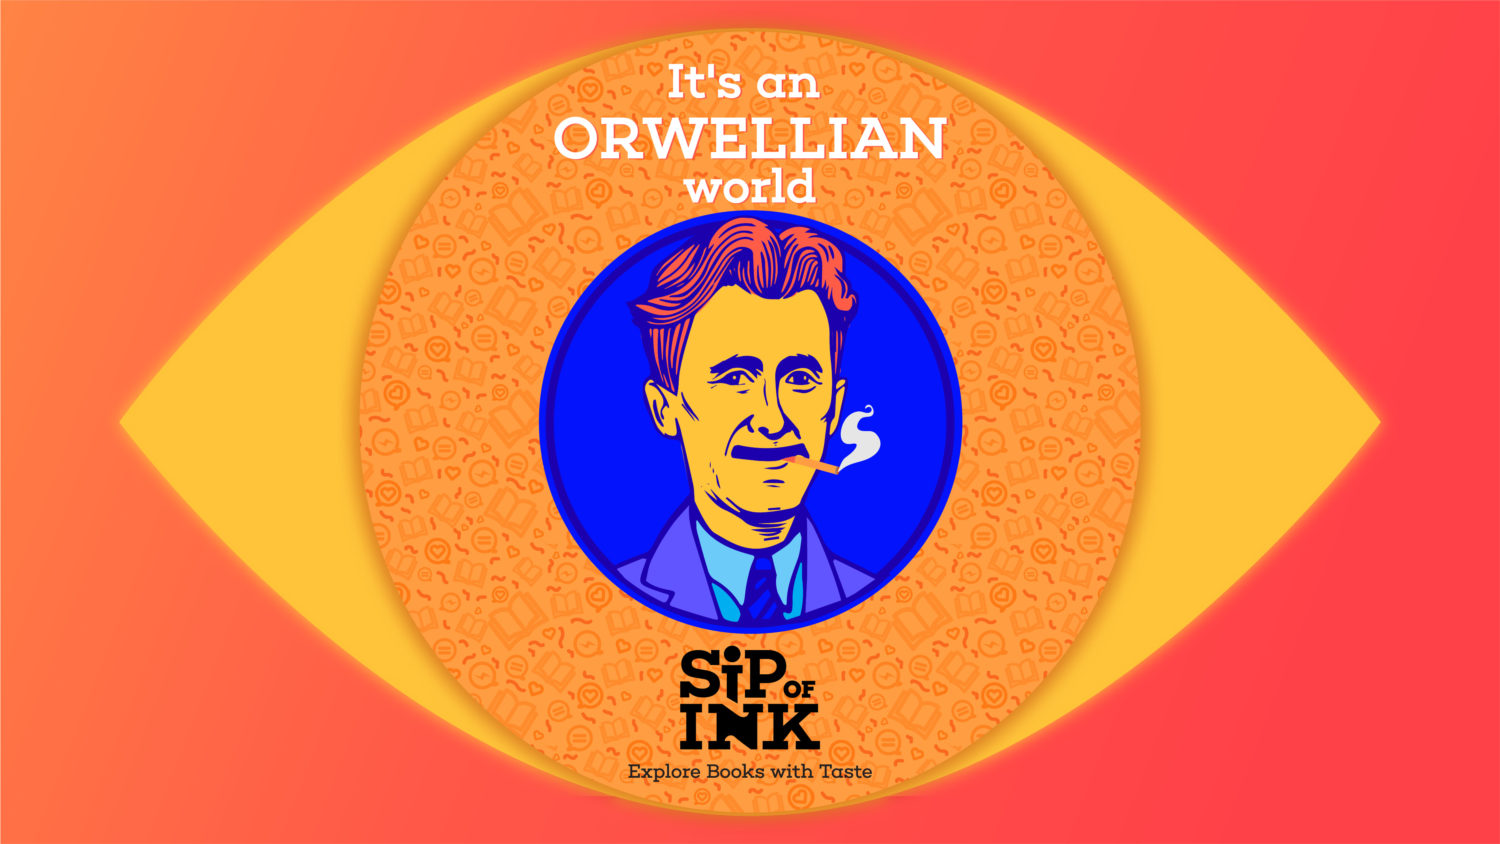 It's an Orwellian world: How George Orwell viewed the 20th century